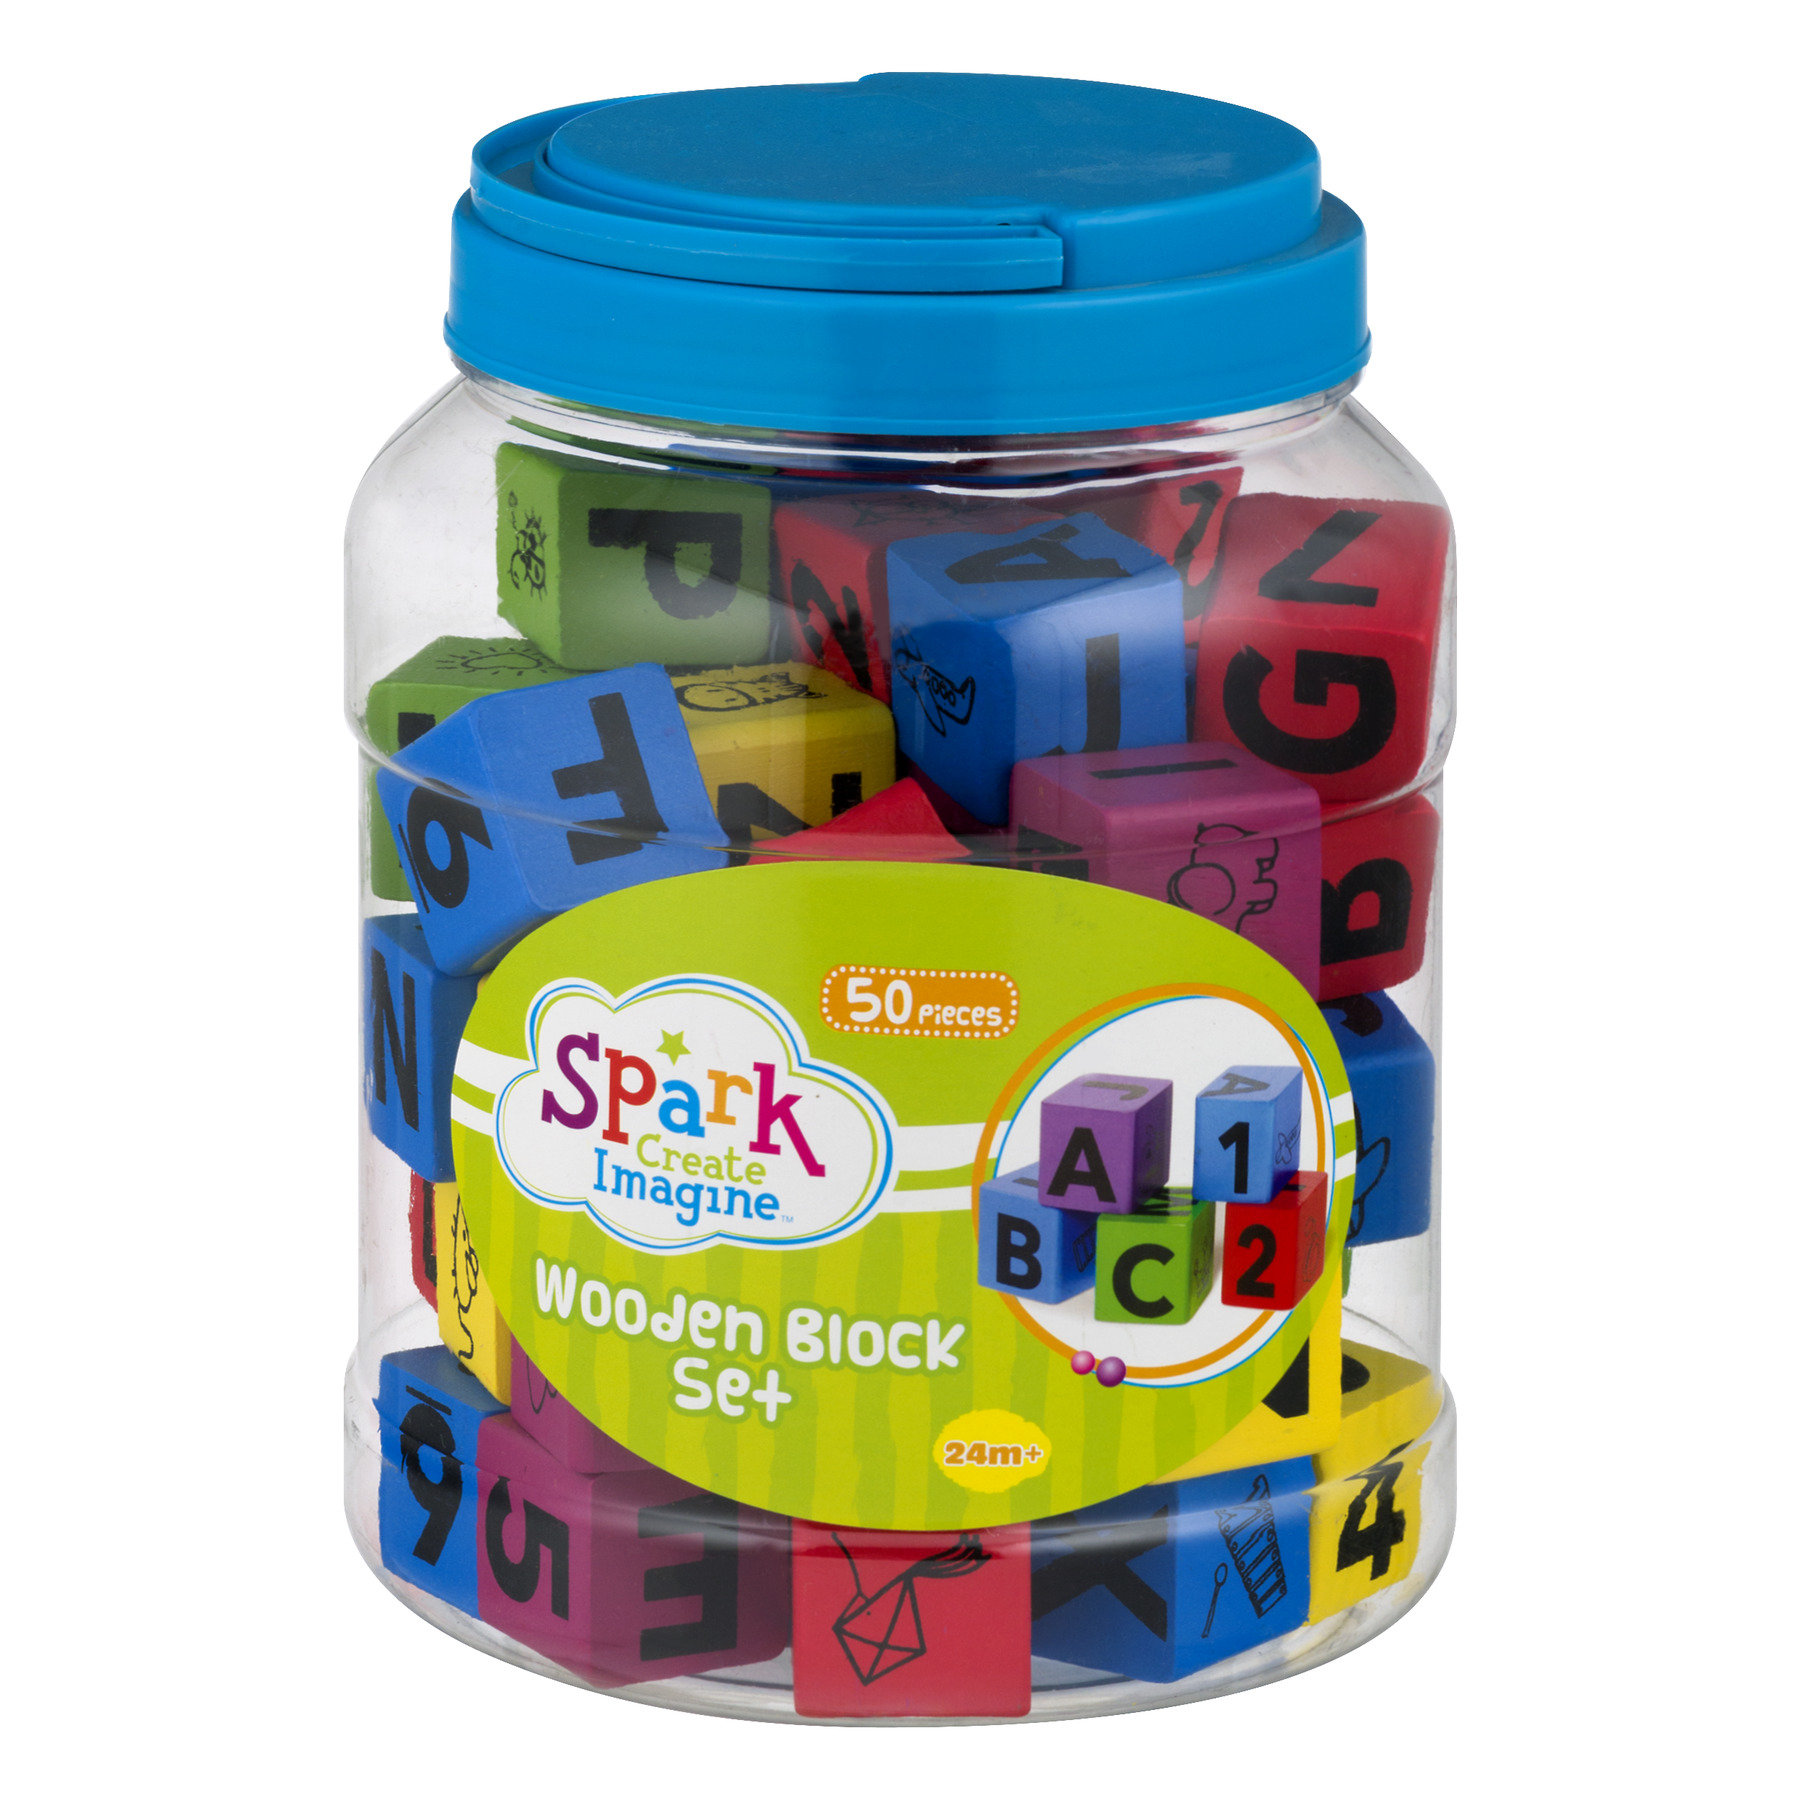 Spark Create Imagine Wooden Block Set, 50.0 PIECE(S)